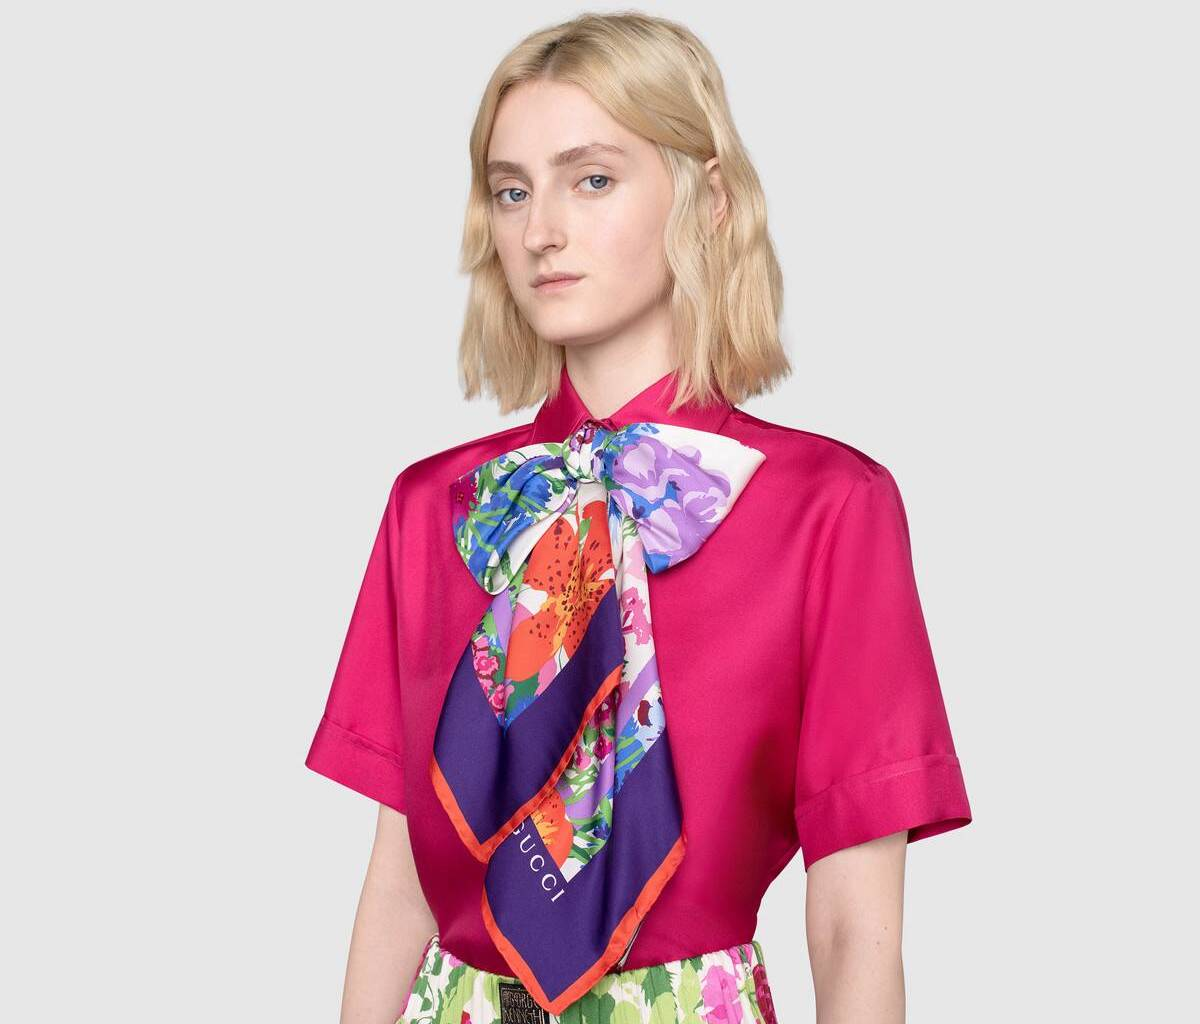 Le Scarf: 4 Fashionable Silk Must-Haves for Spring